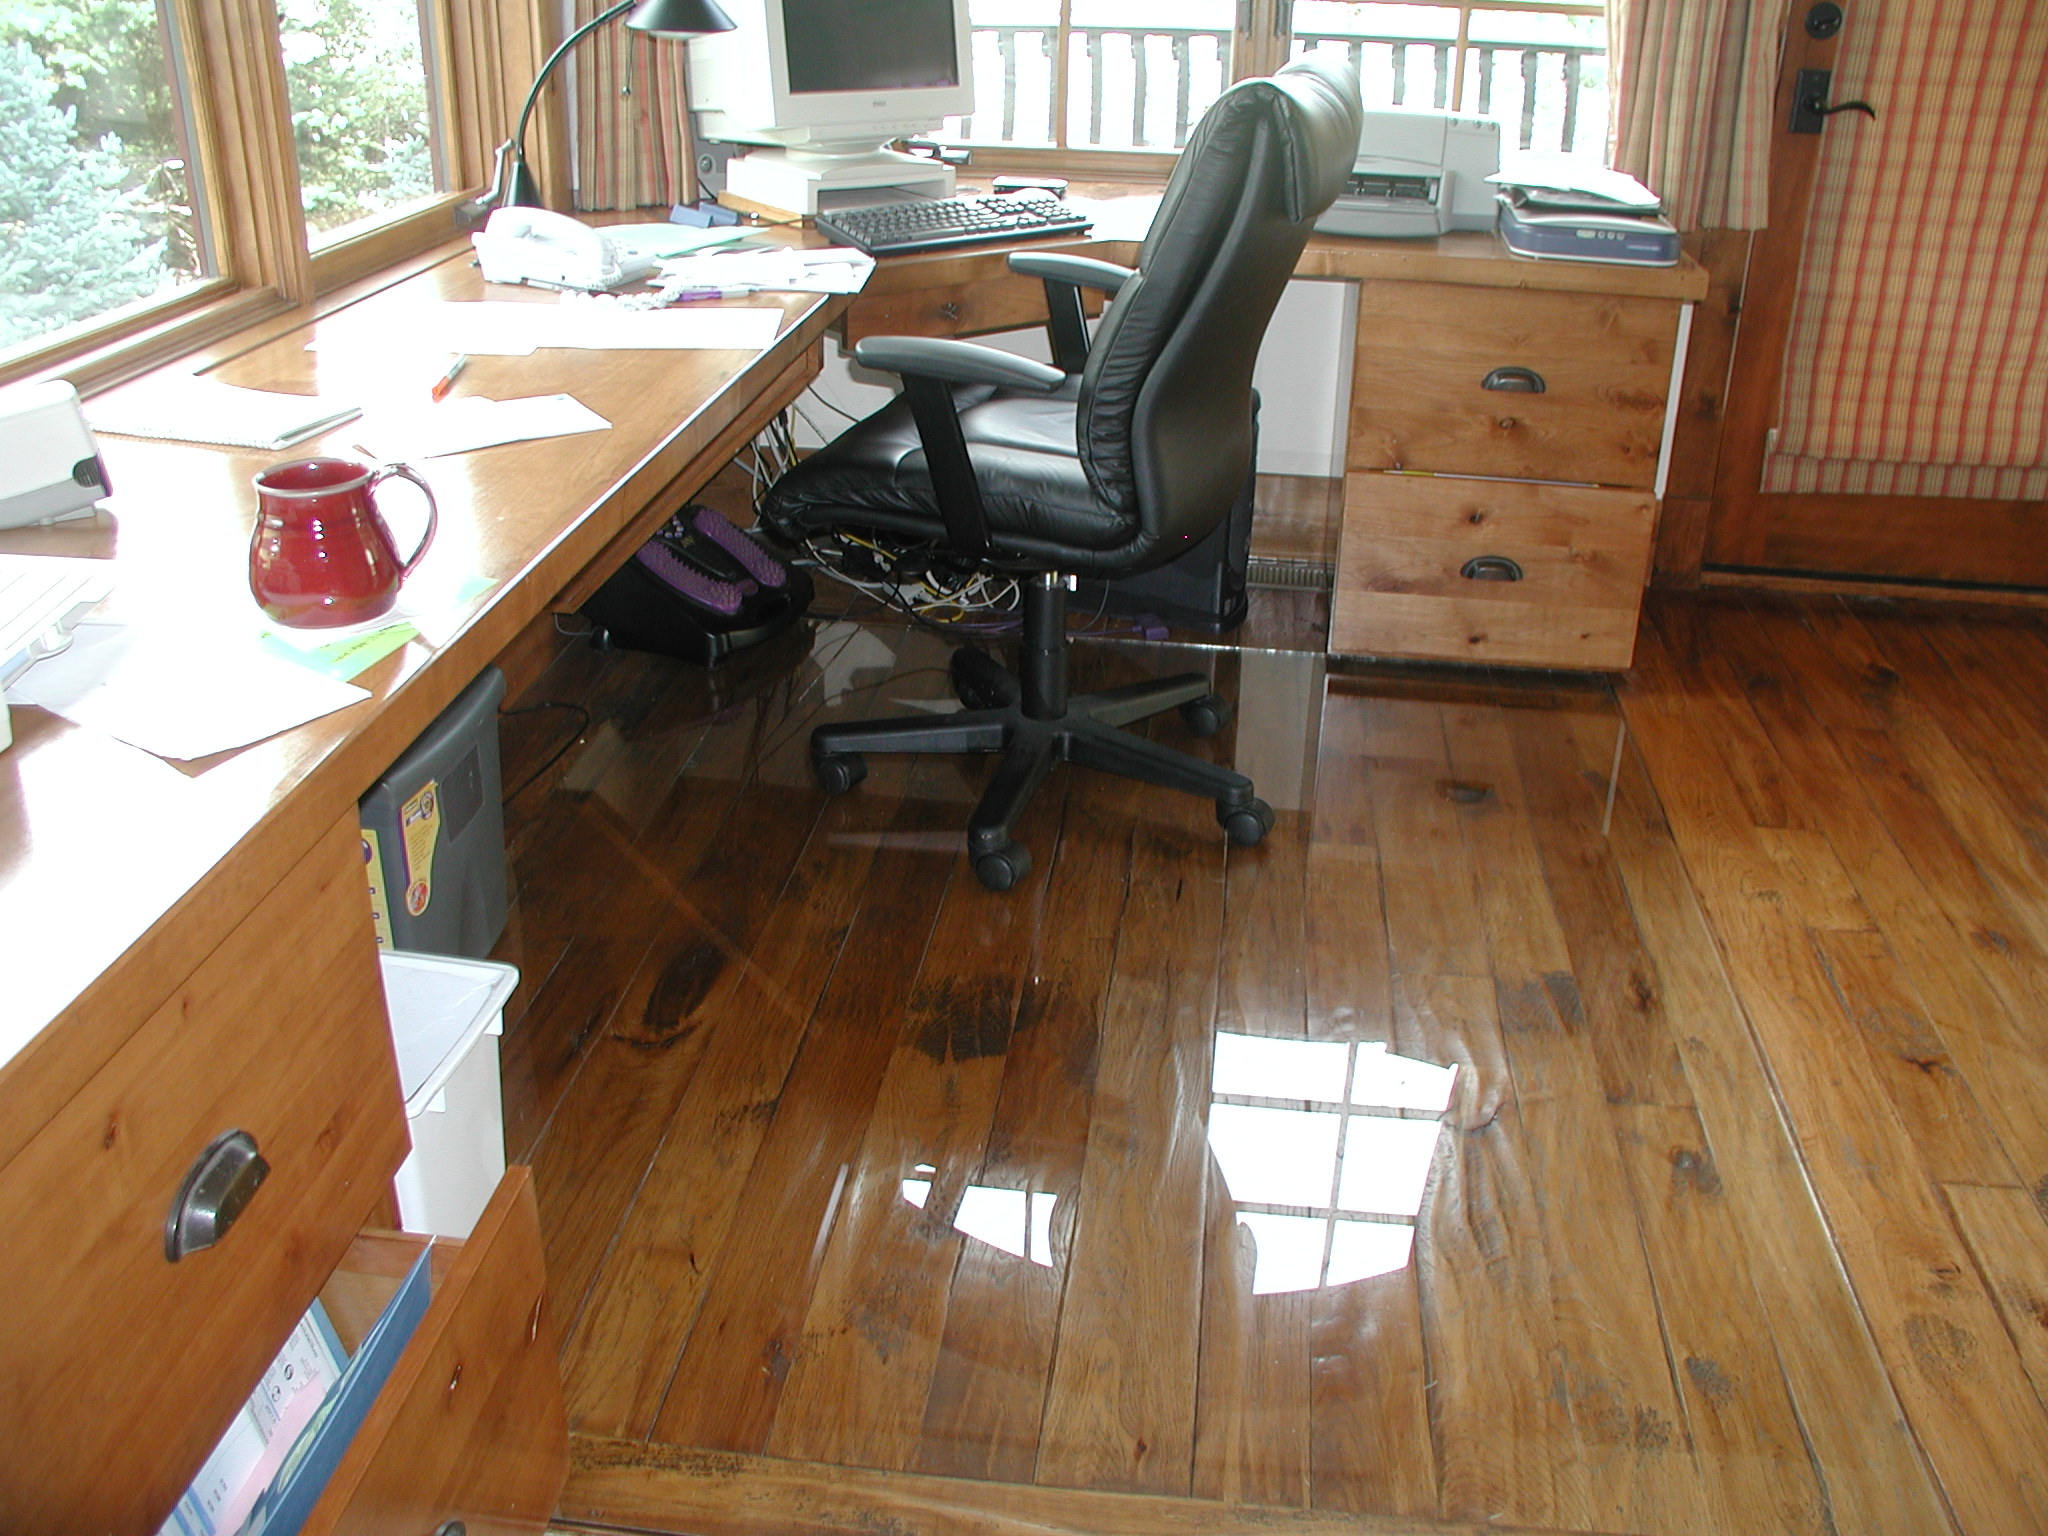 High Quality Transparent Floor Mats For Wooden Floors